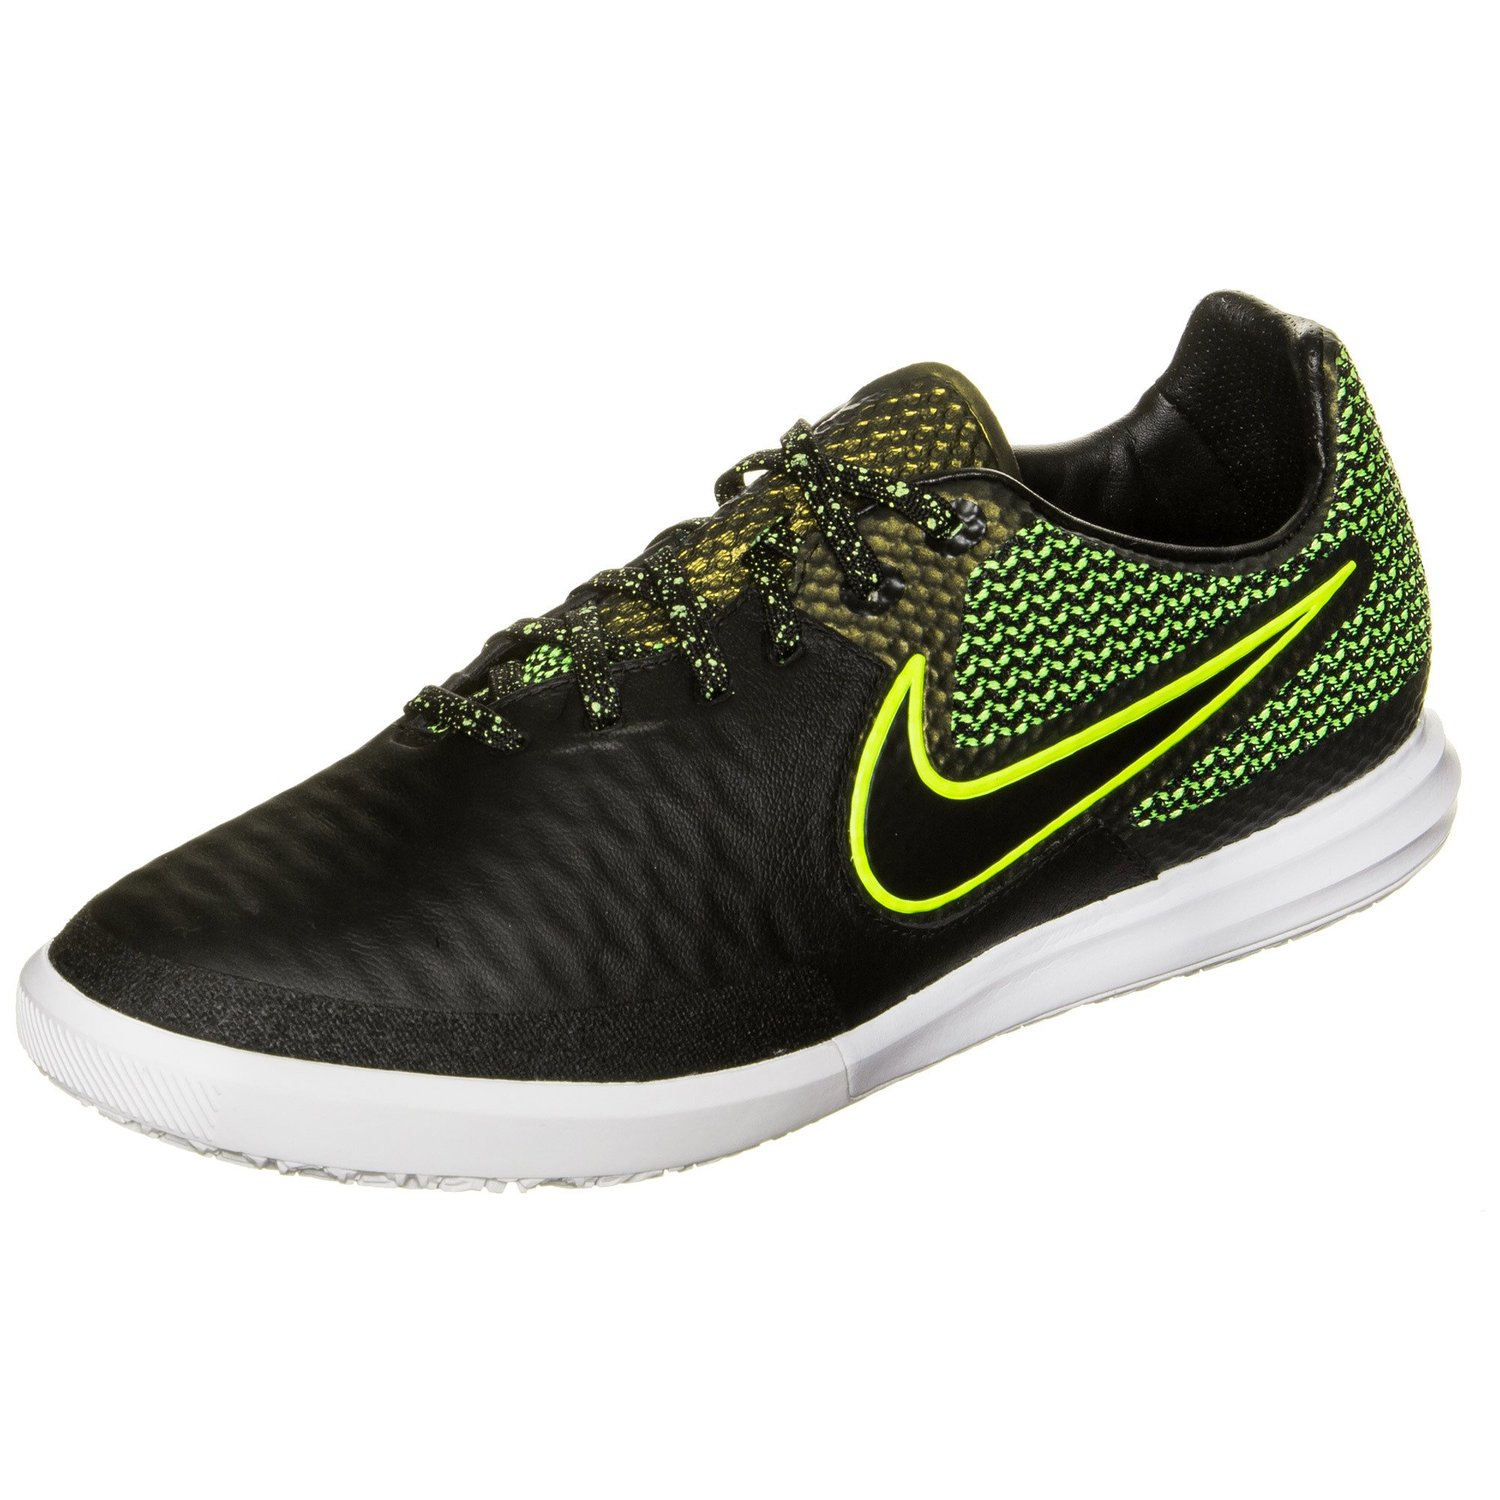 super popular 99833 77cc9 Get Quotations · Nike Magista X Finale IC - Black Black-Volt-WHITE-Volt -